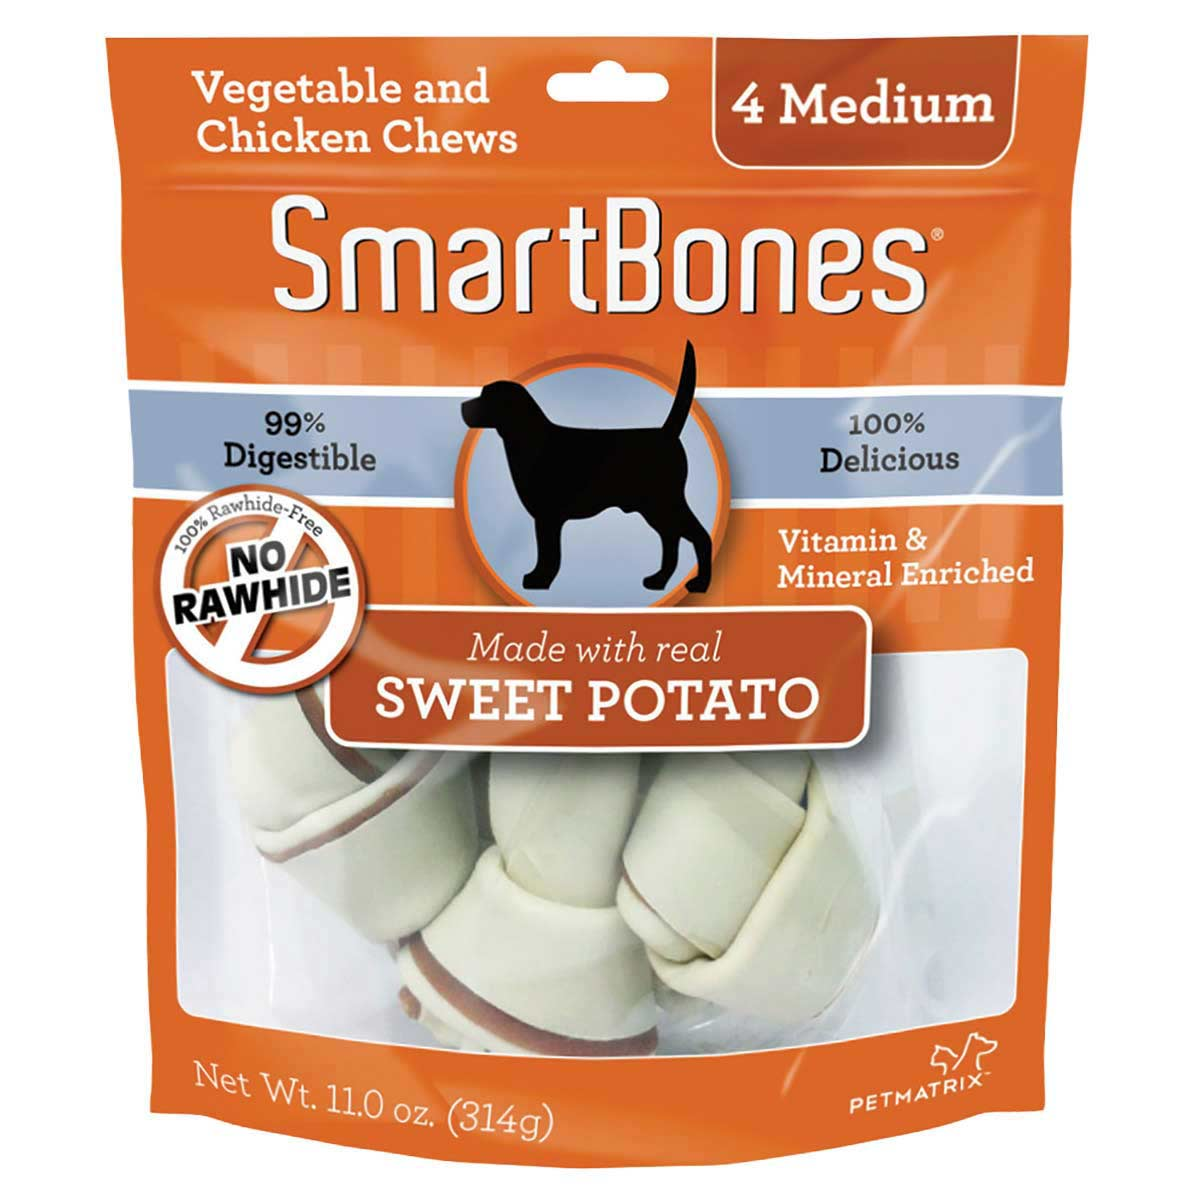 SmartBones Sweet Potato Bone 5.5 inch Medium 4 Pack - Alternative to Rawhide